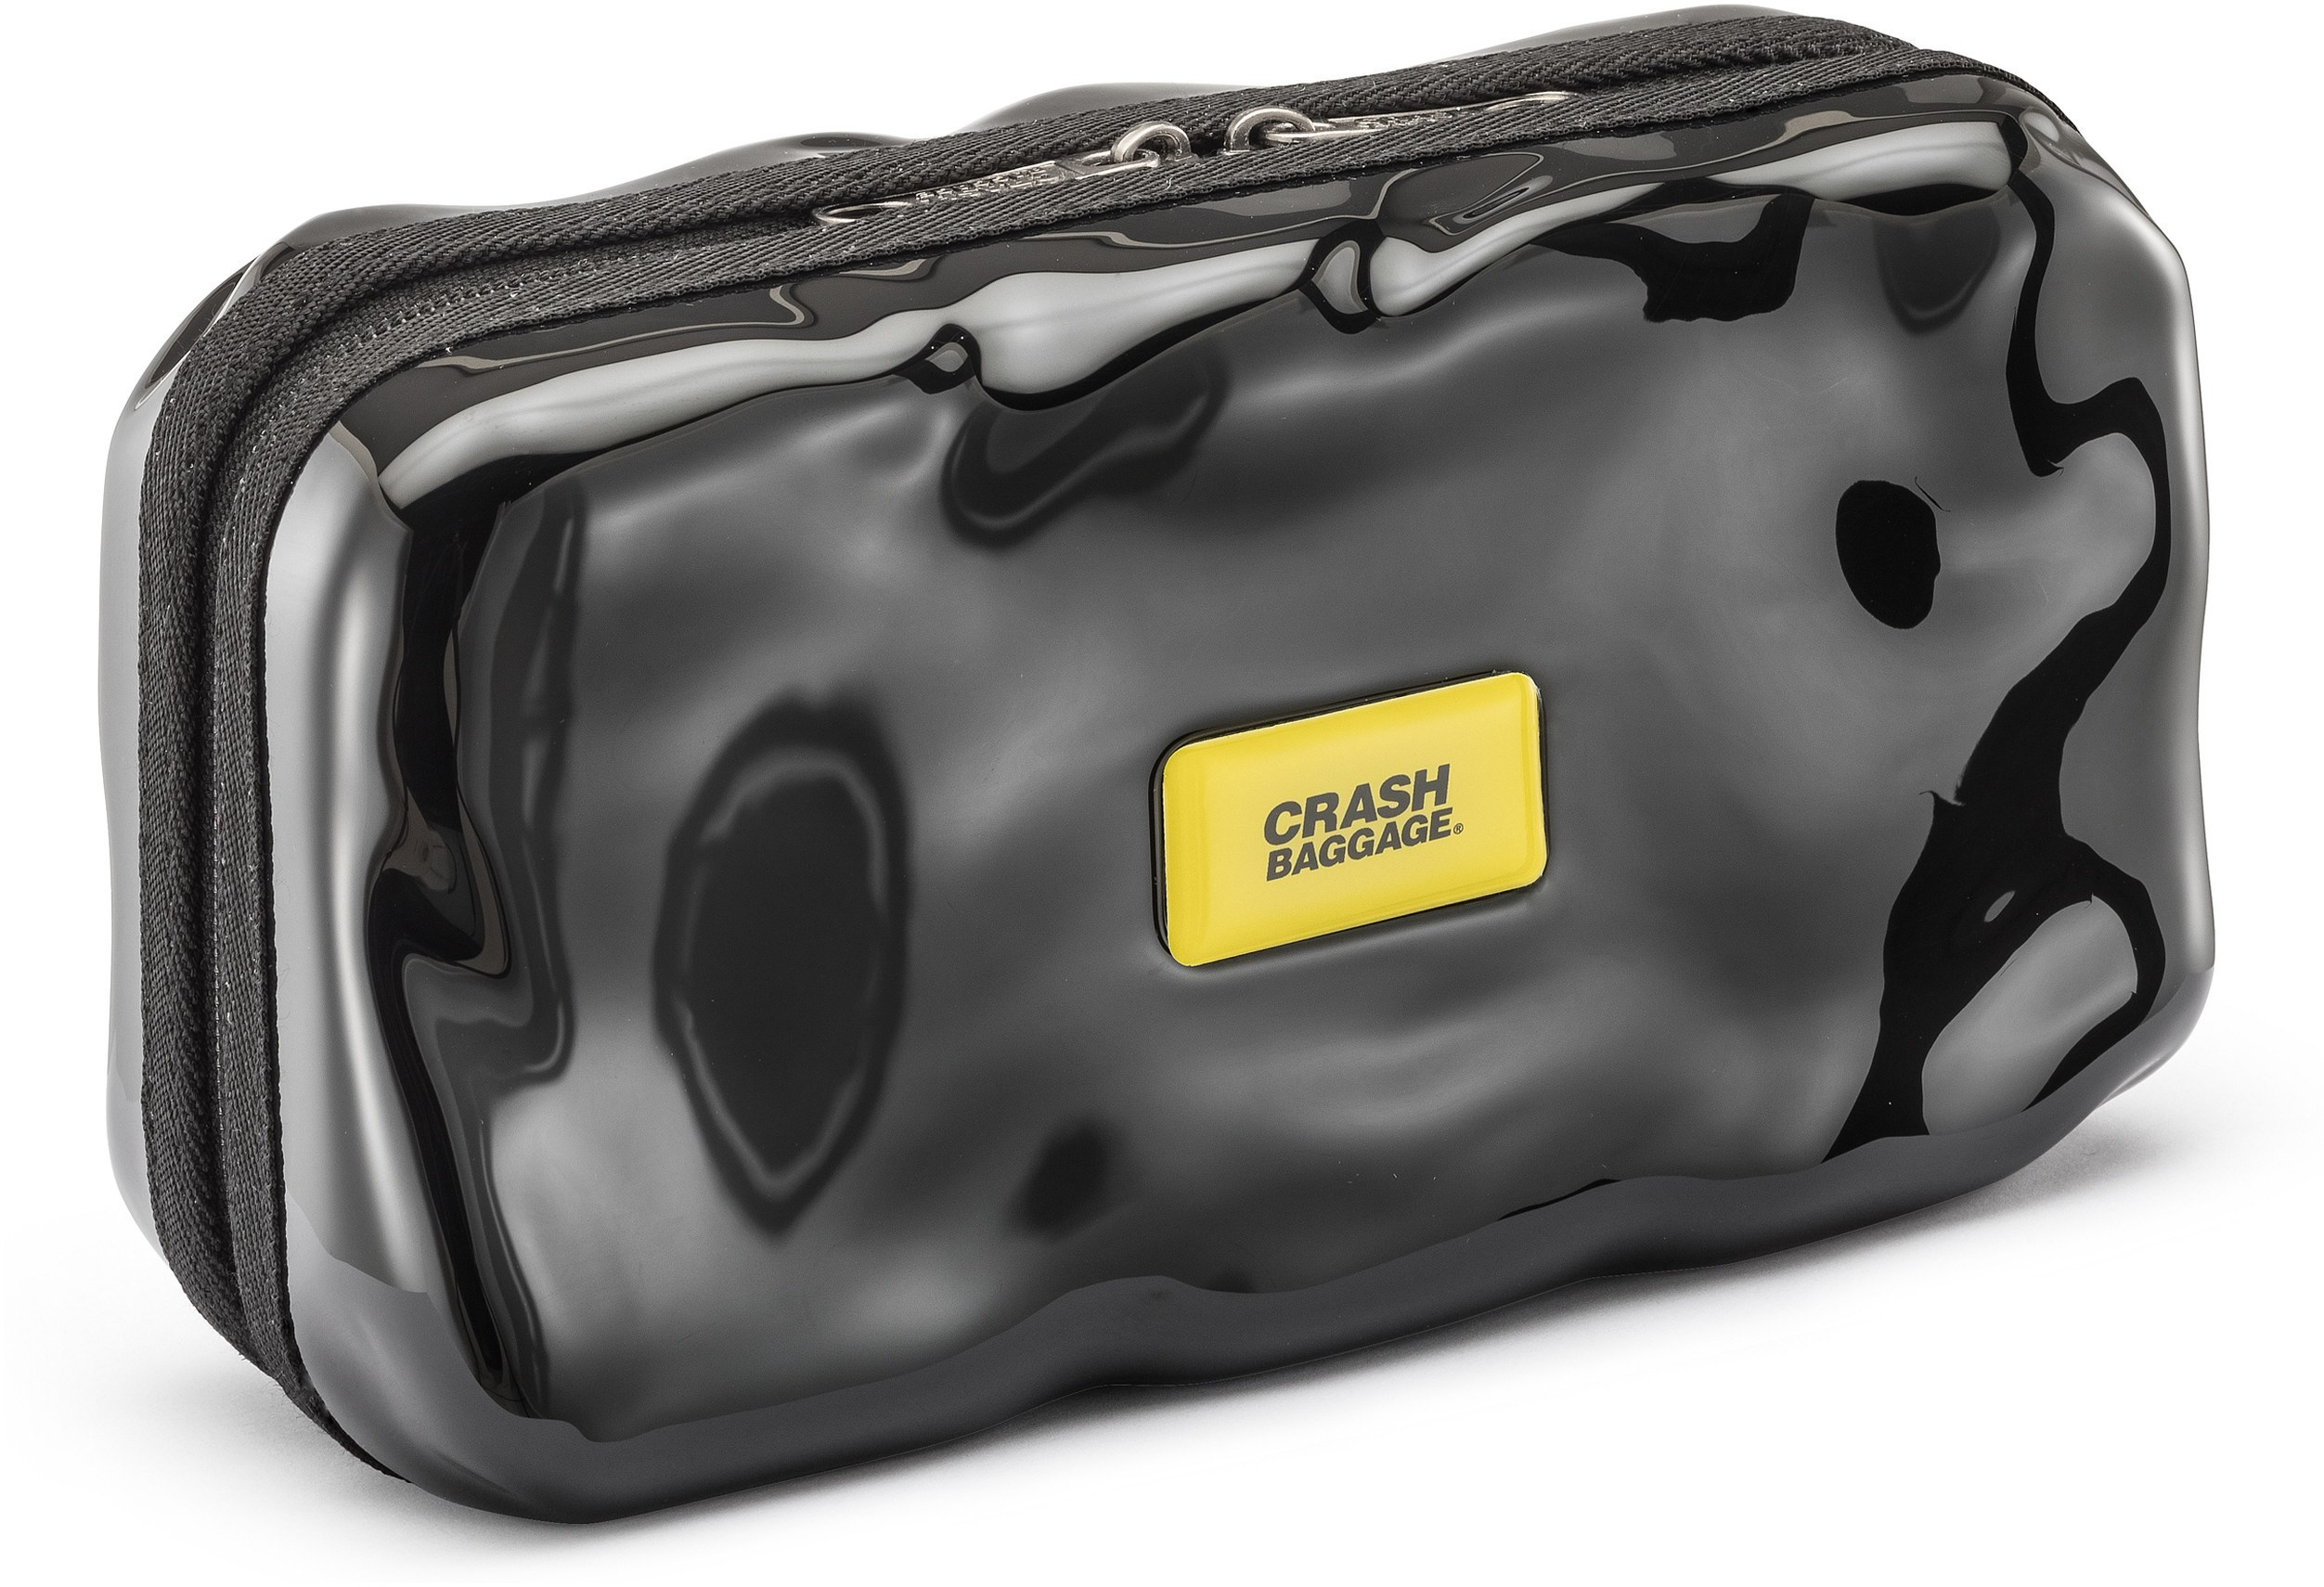 Crash Baggage Kosmetyczka Crash Baggage Black CB370.01